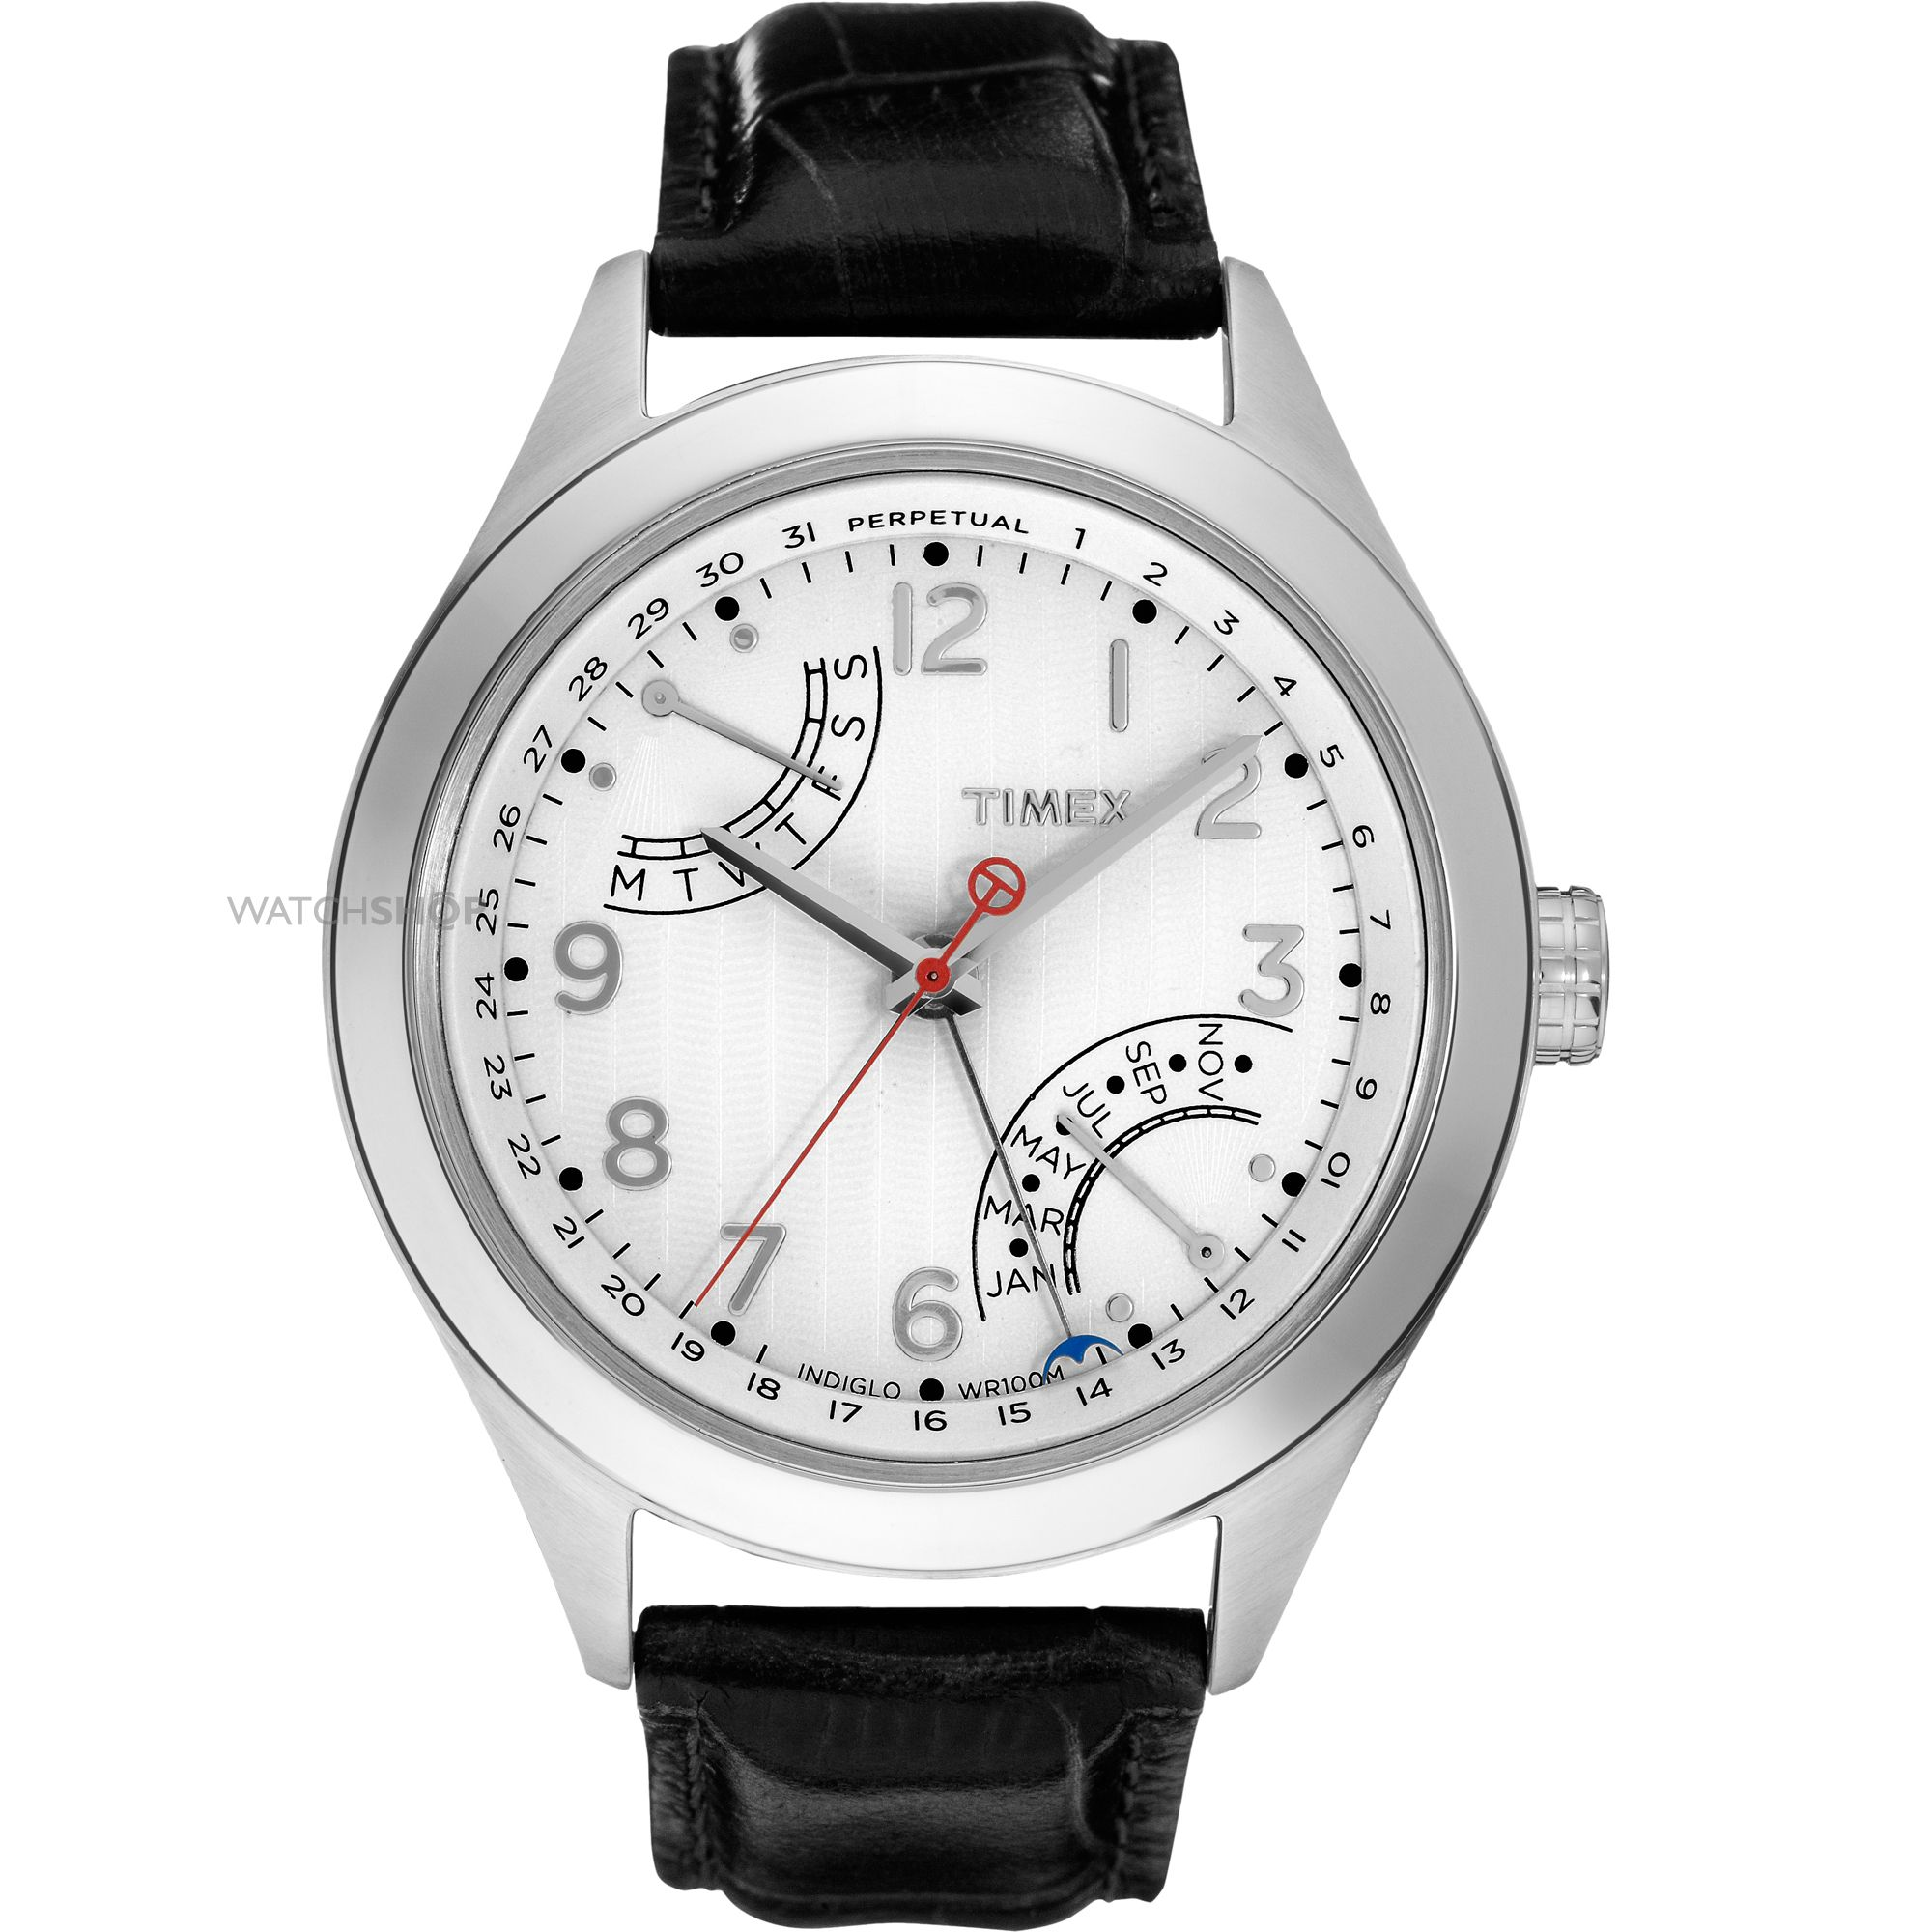 Timex Watch Perpetual Calendar Instructions Bollywood Actress On